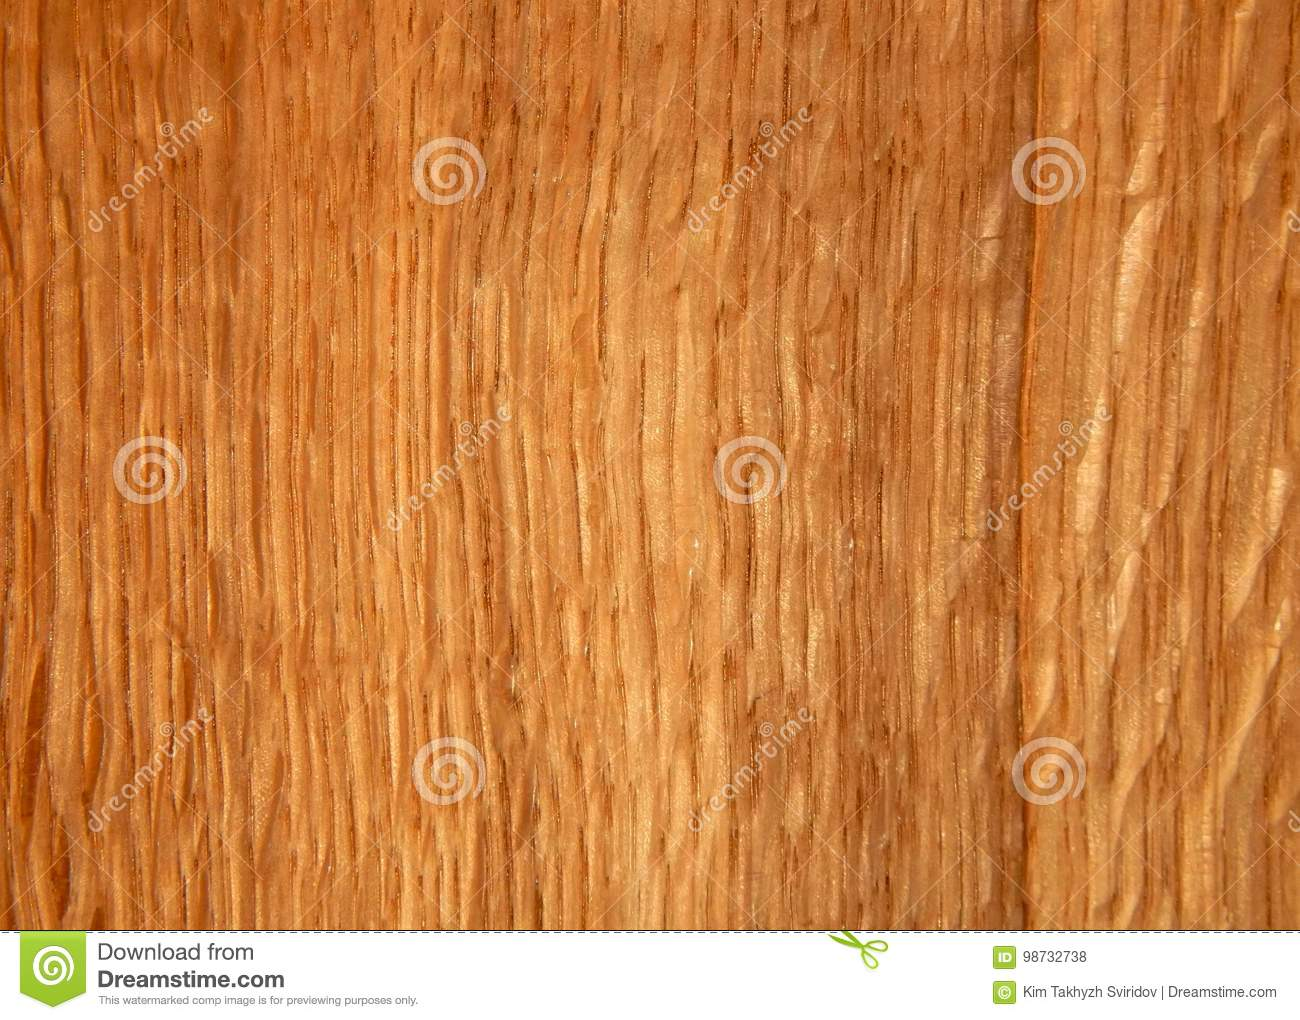 Gluing Plywood Sheets Together